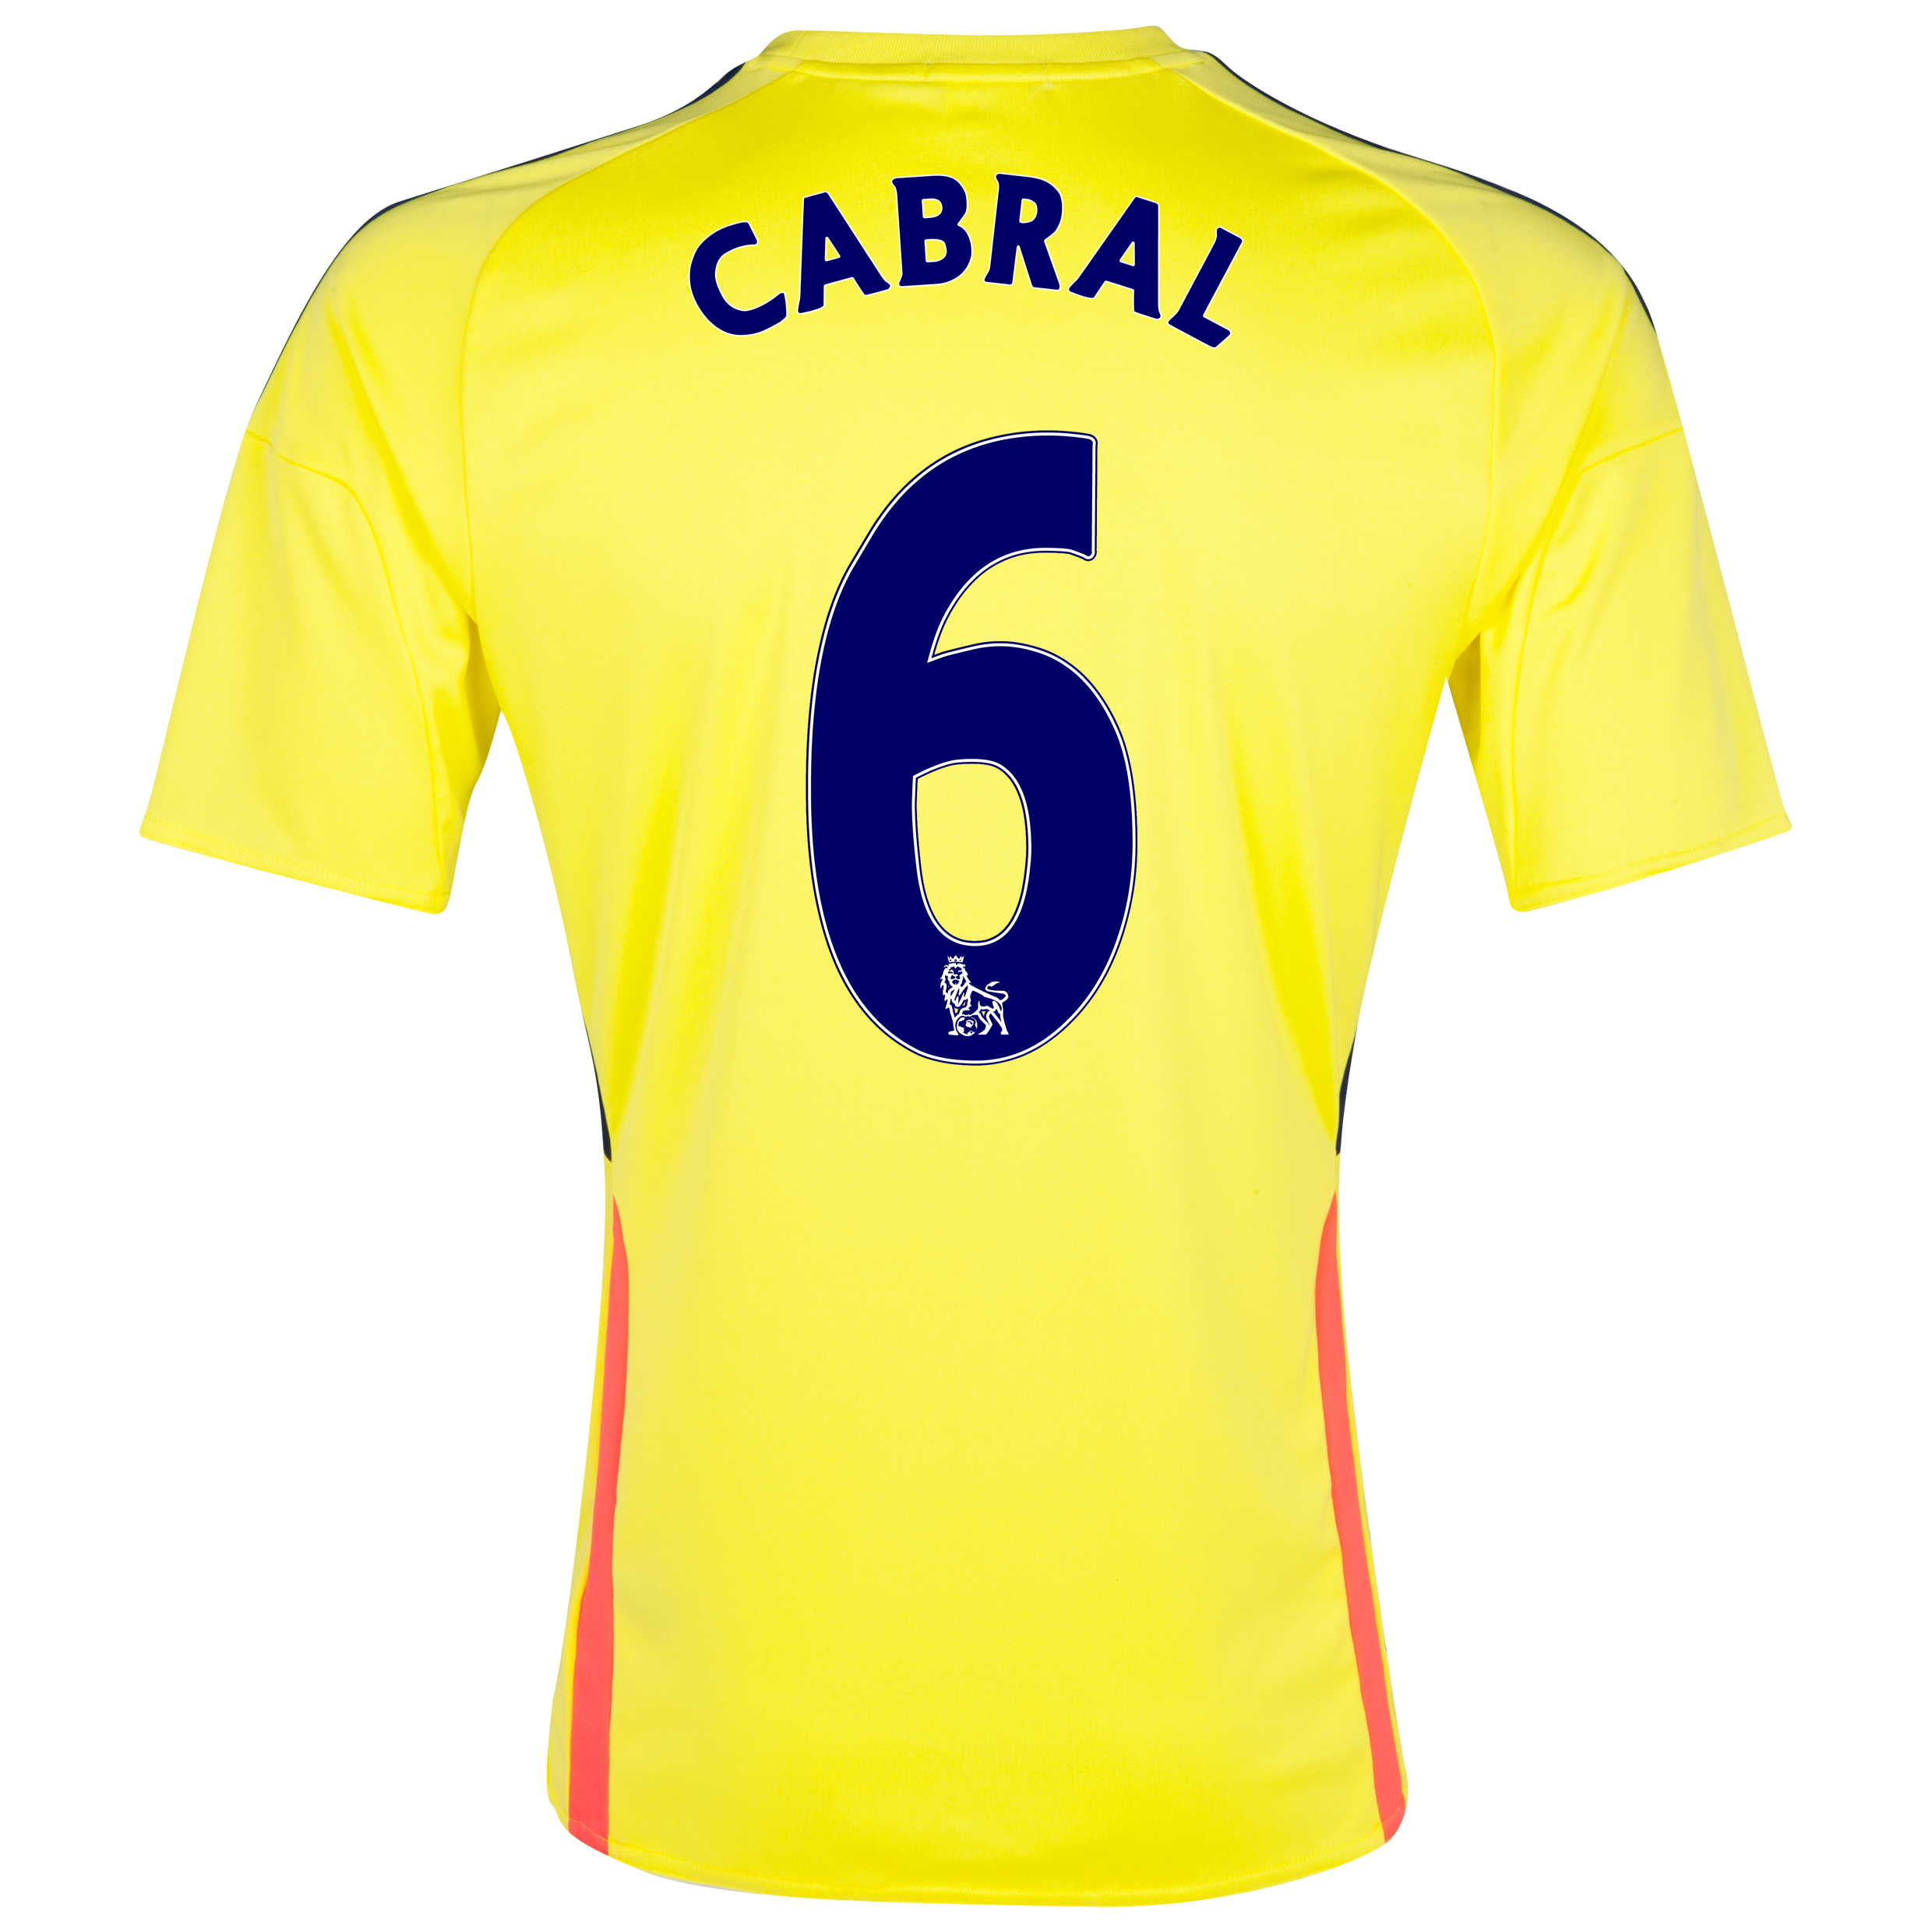 Sunderland Away Shirt 2013/14 with Cabral 6 printing